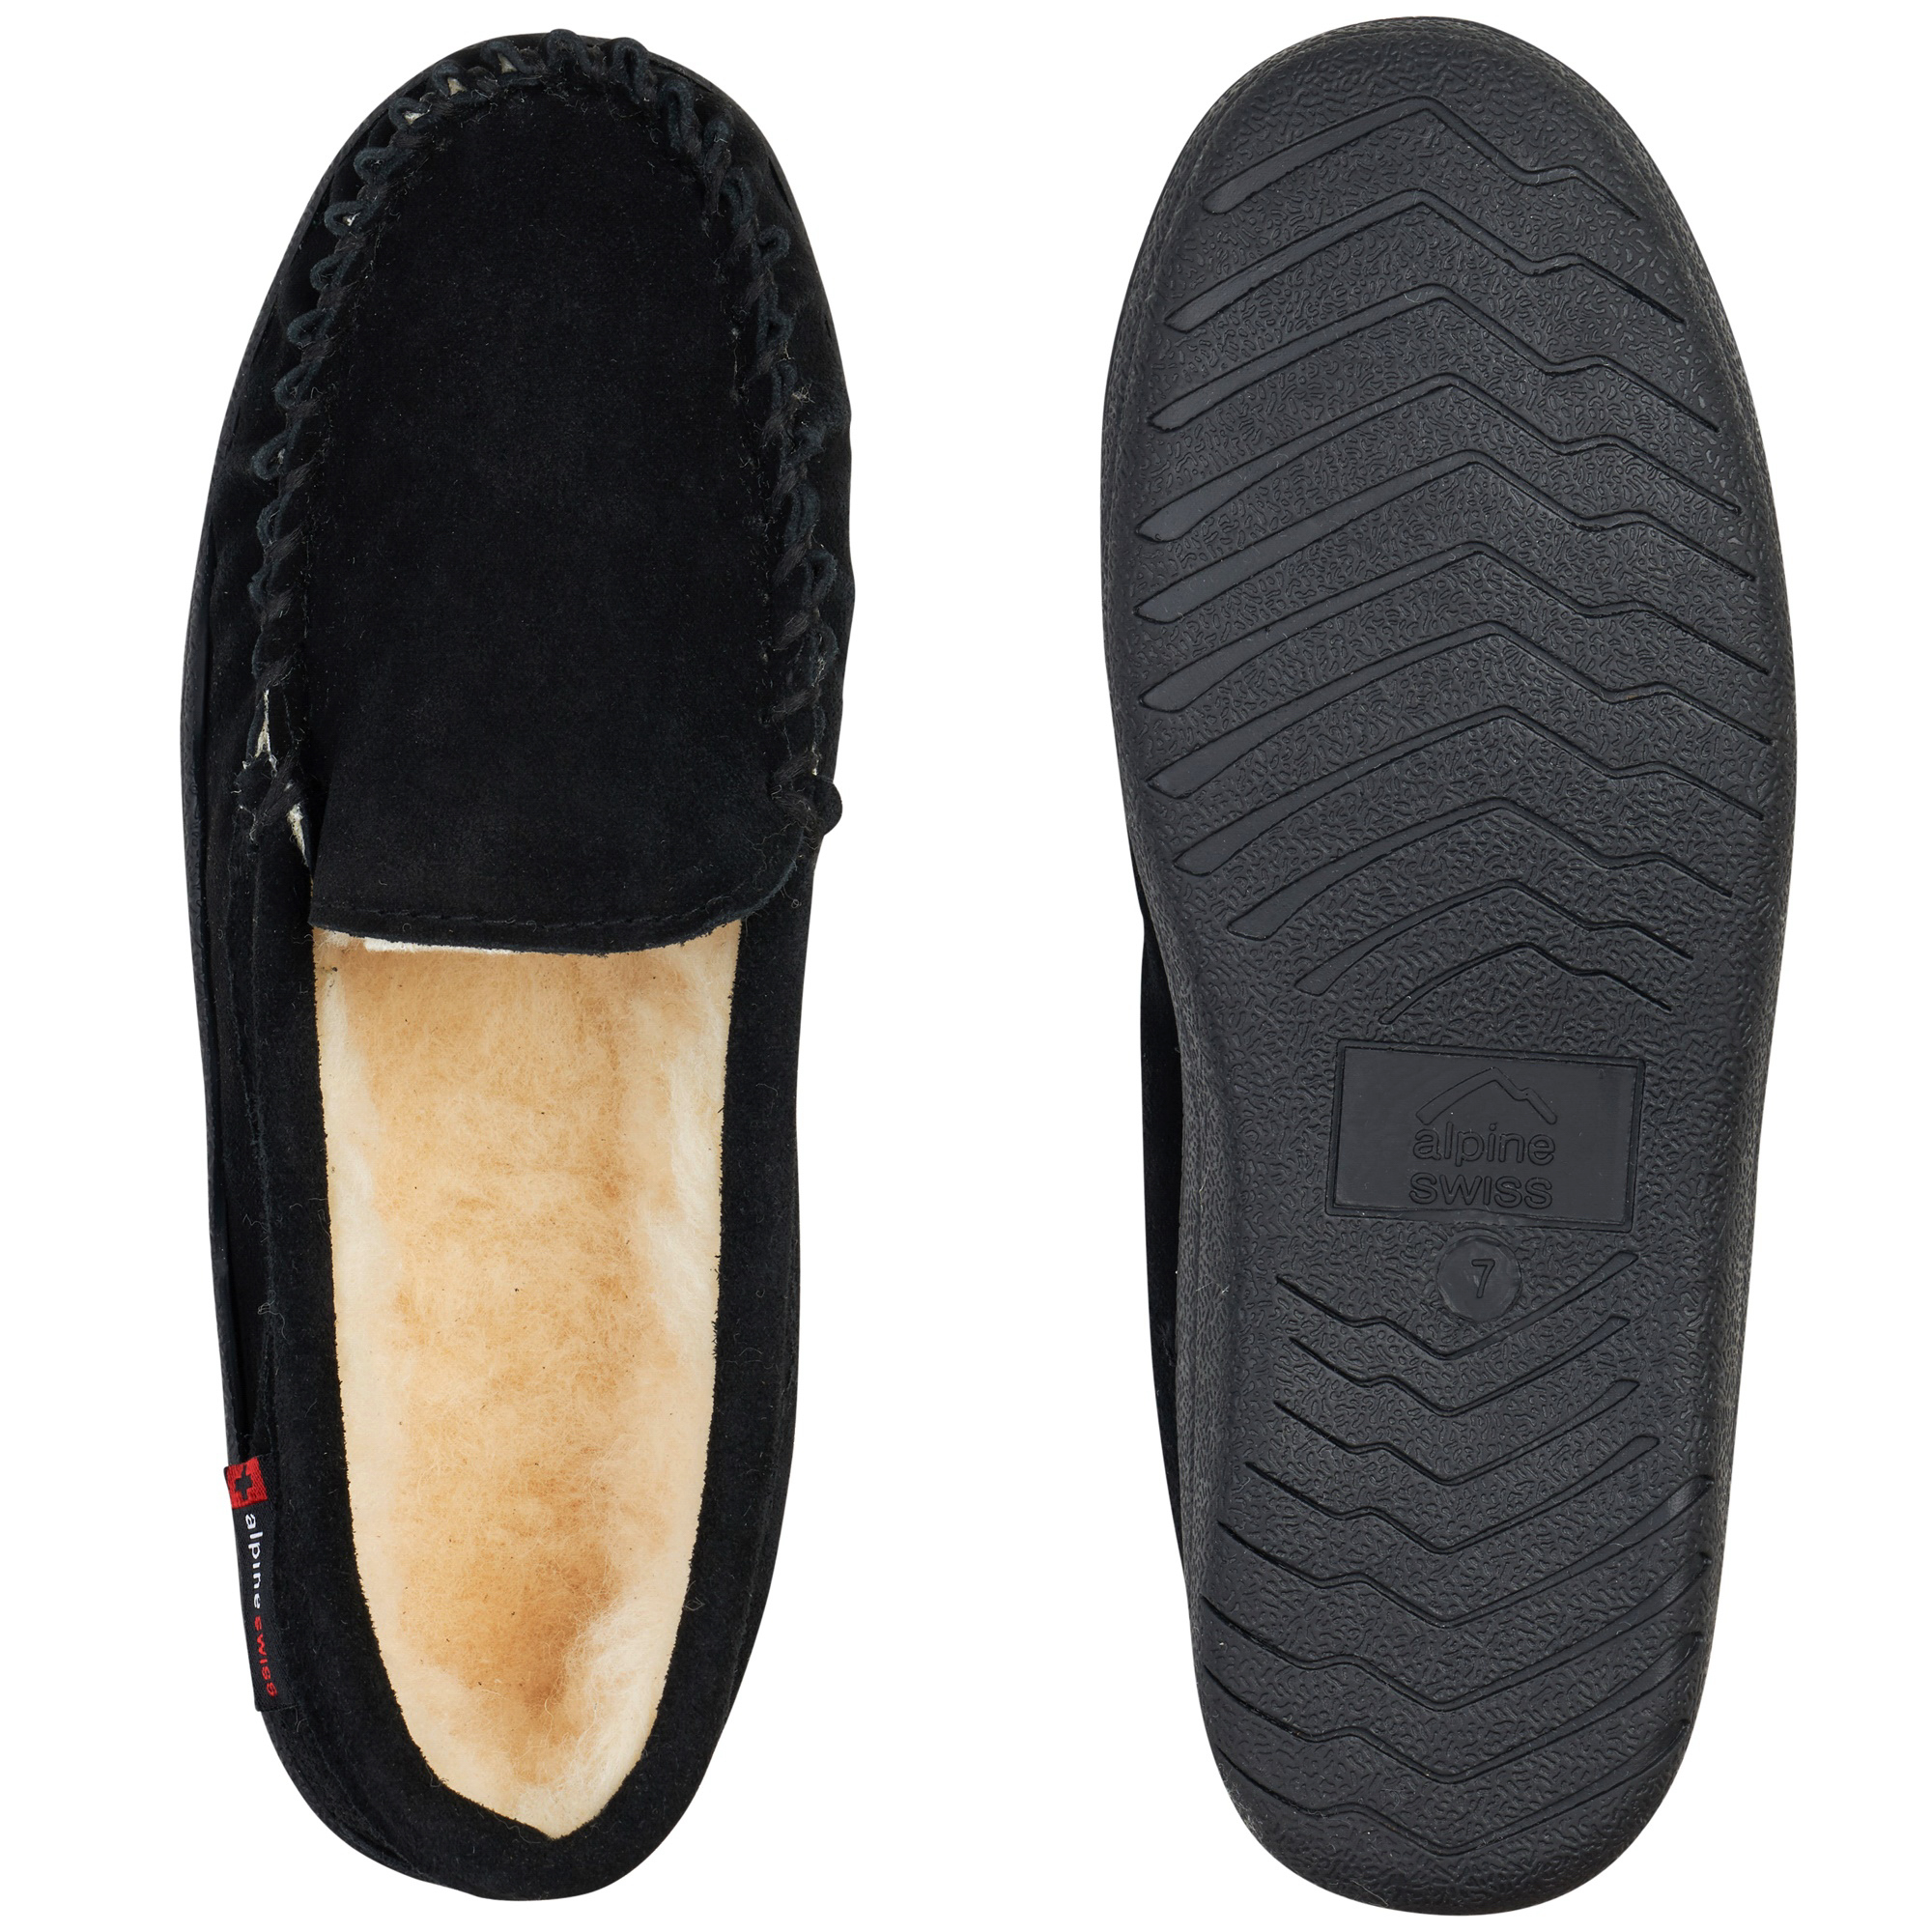 thumbnail 14 - Alpine-Swiss-Yukon-Mens-Suede-Shearling-Moccasin-Slippers-Moc-Toe-Slip-On-Shoes